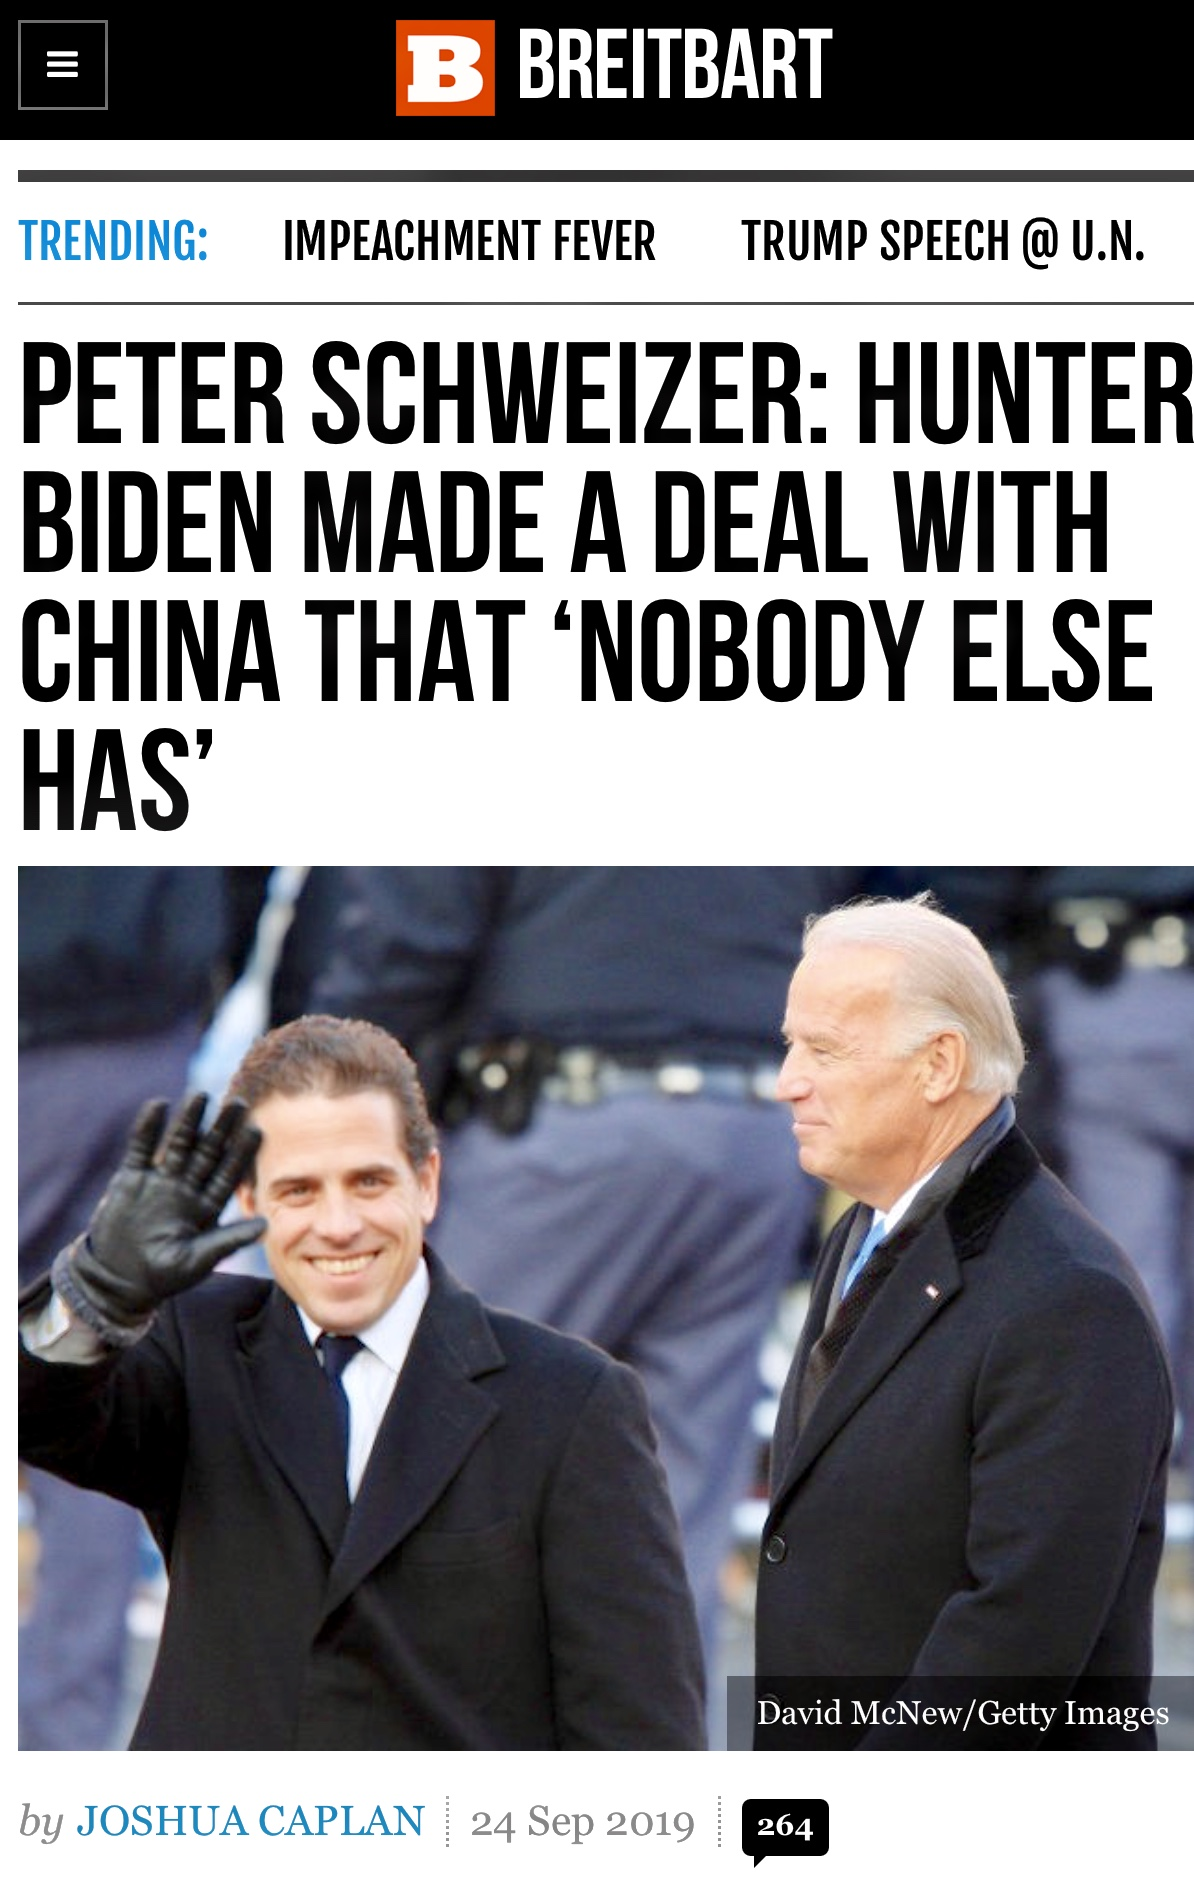 Schweizer: Hunter Biden Made a Deal with China that 'Nobody Else Has'